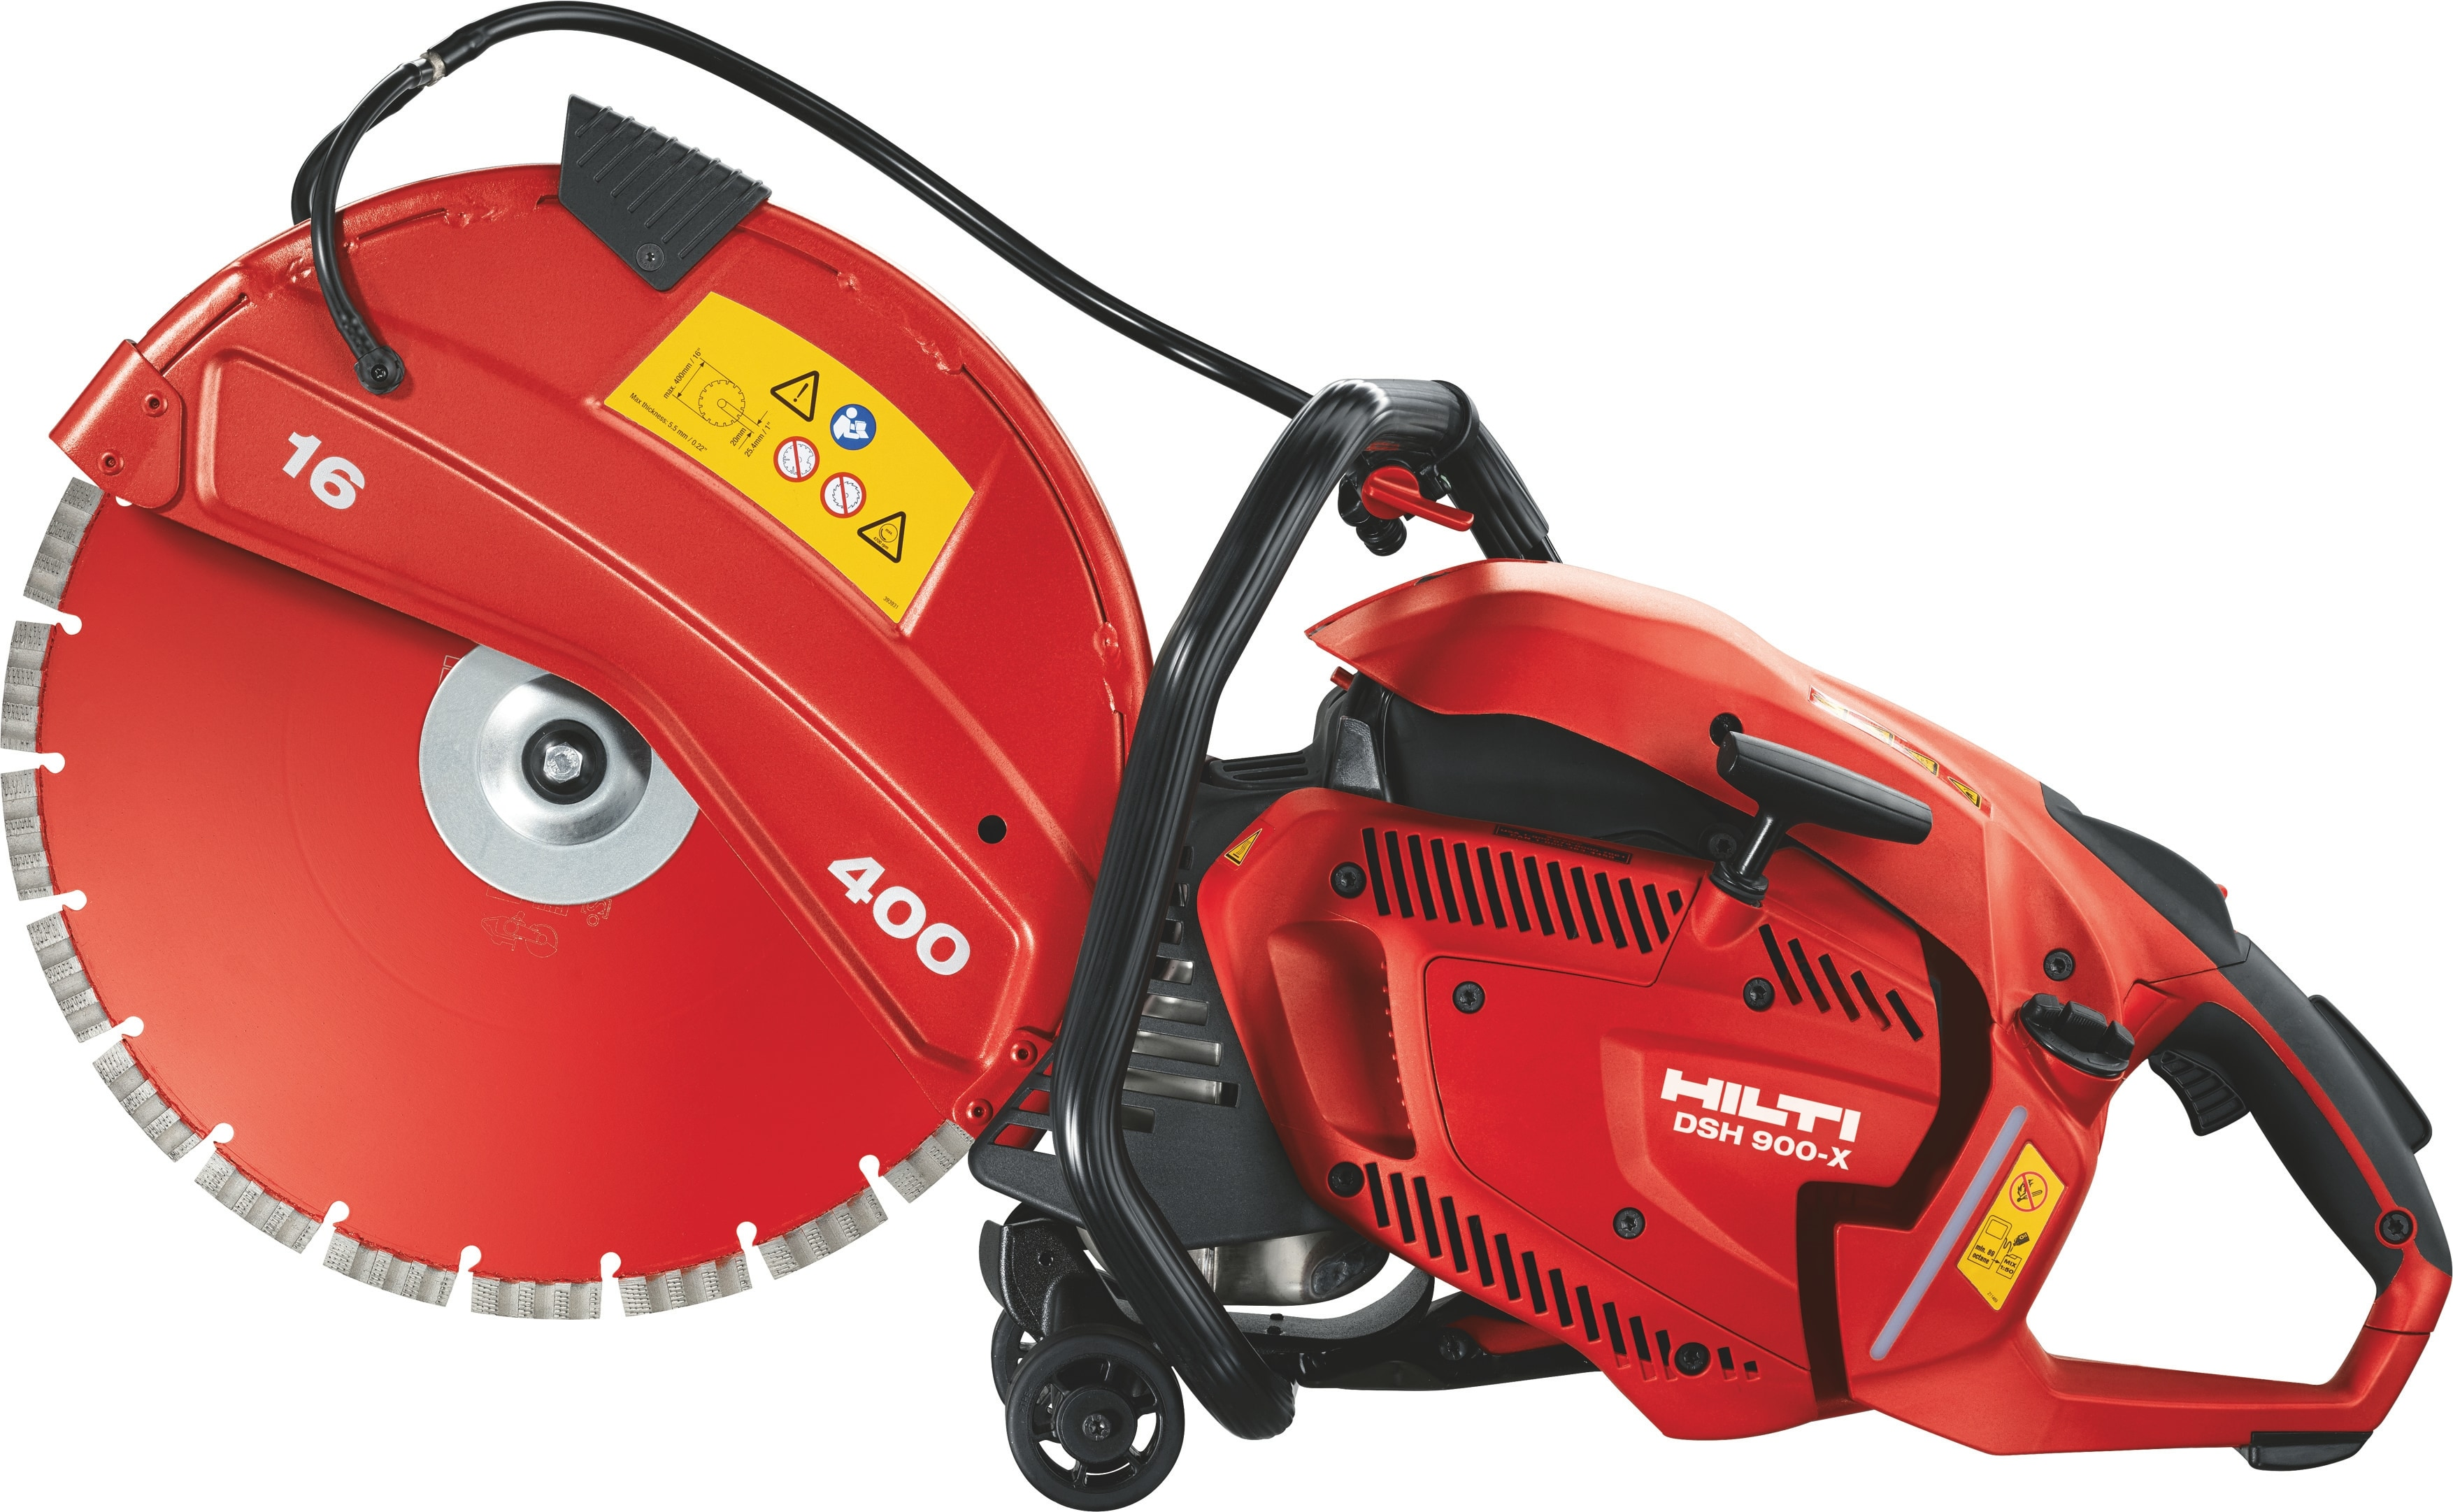 Hilti DSH 600-X light weight diamond gas saw with DSH-P water pump